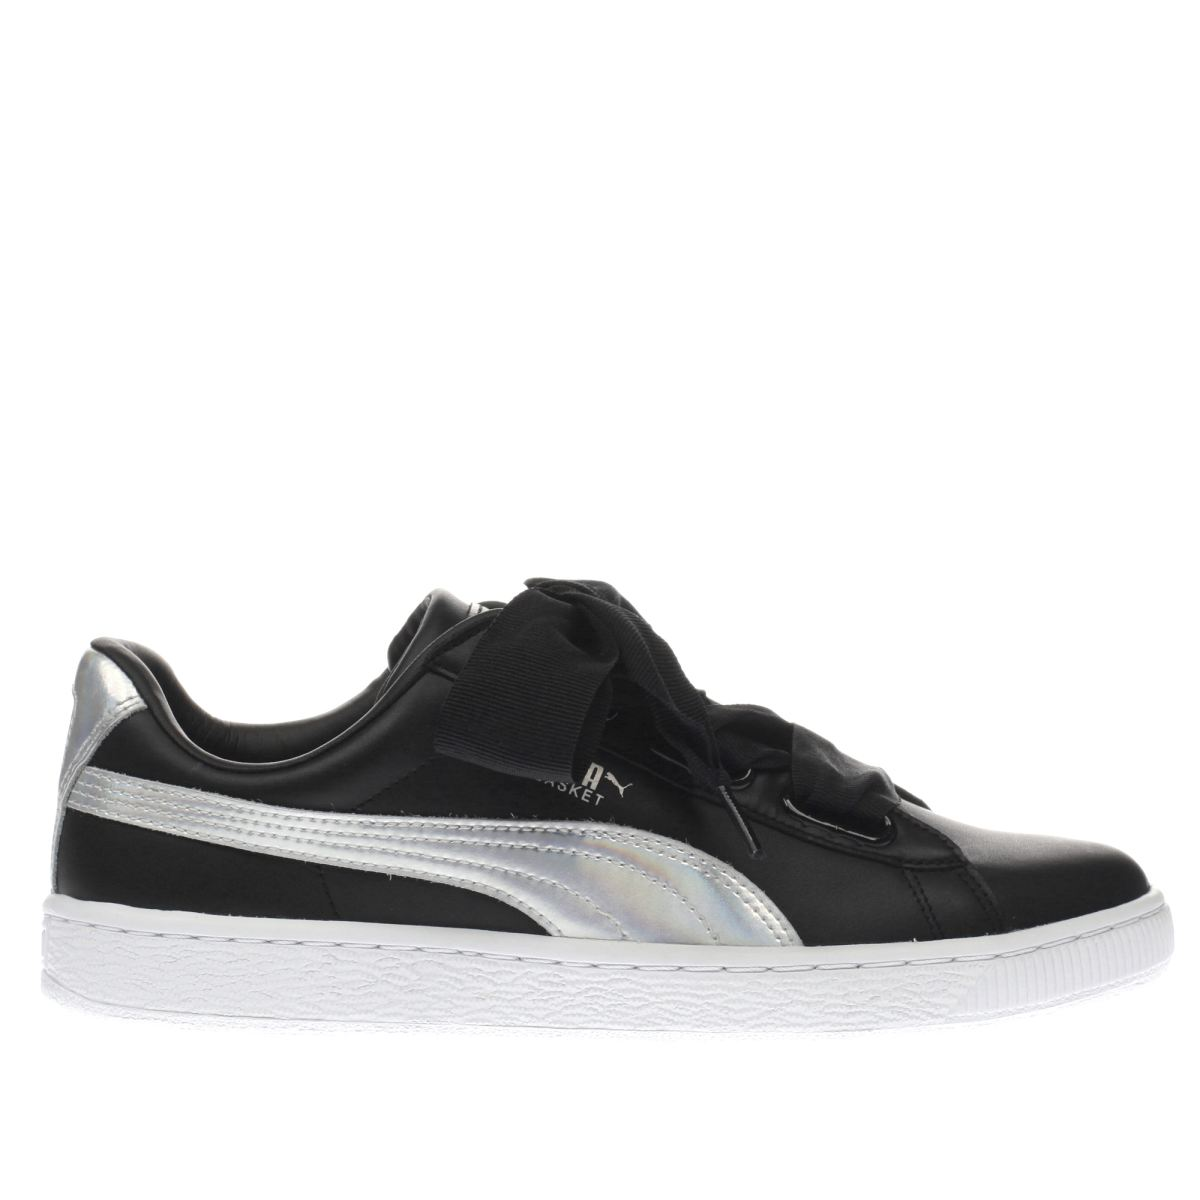 bfbf71f93736 puma suede 40 women cheap   OFF64% Discounted